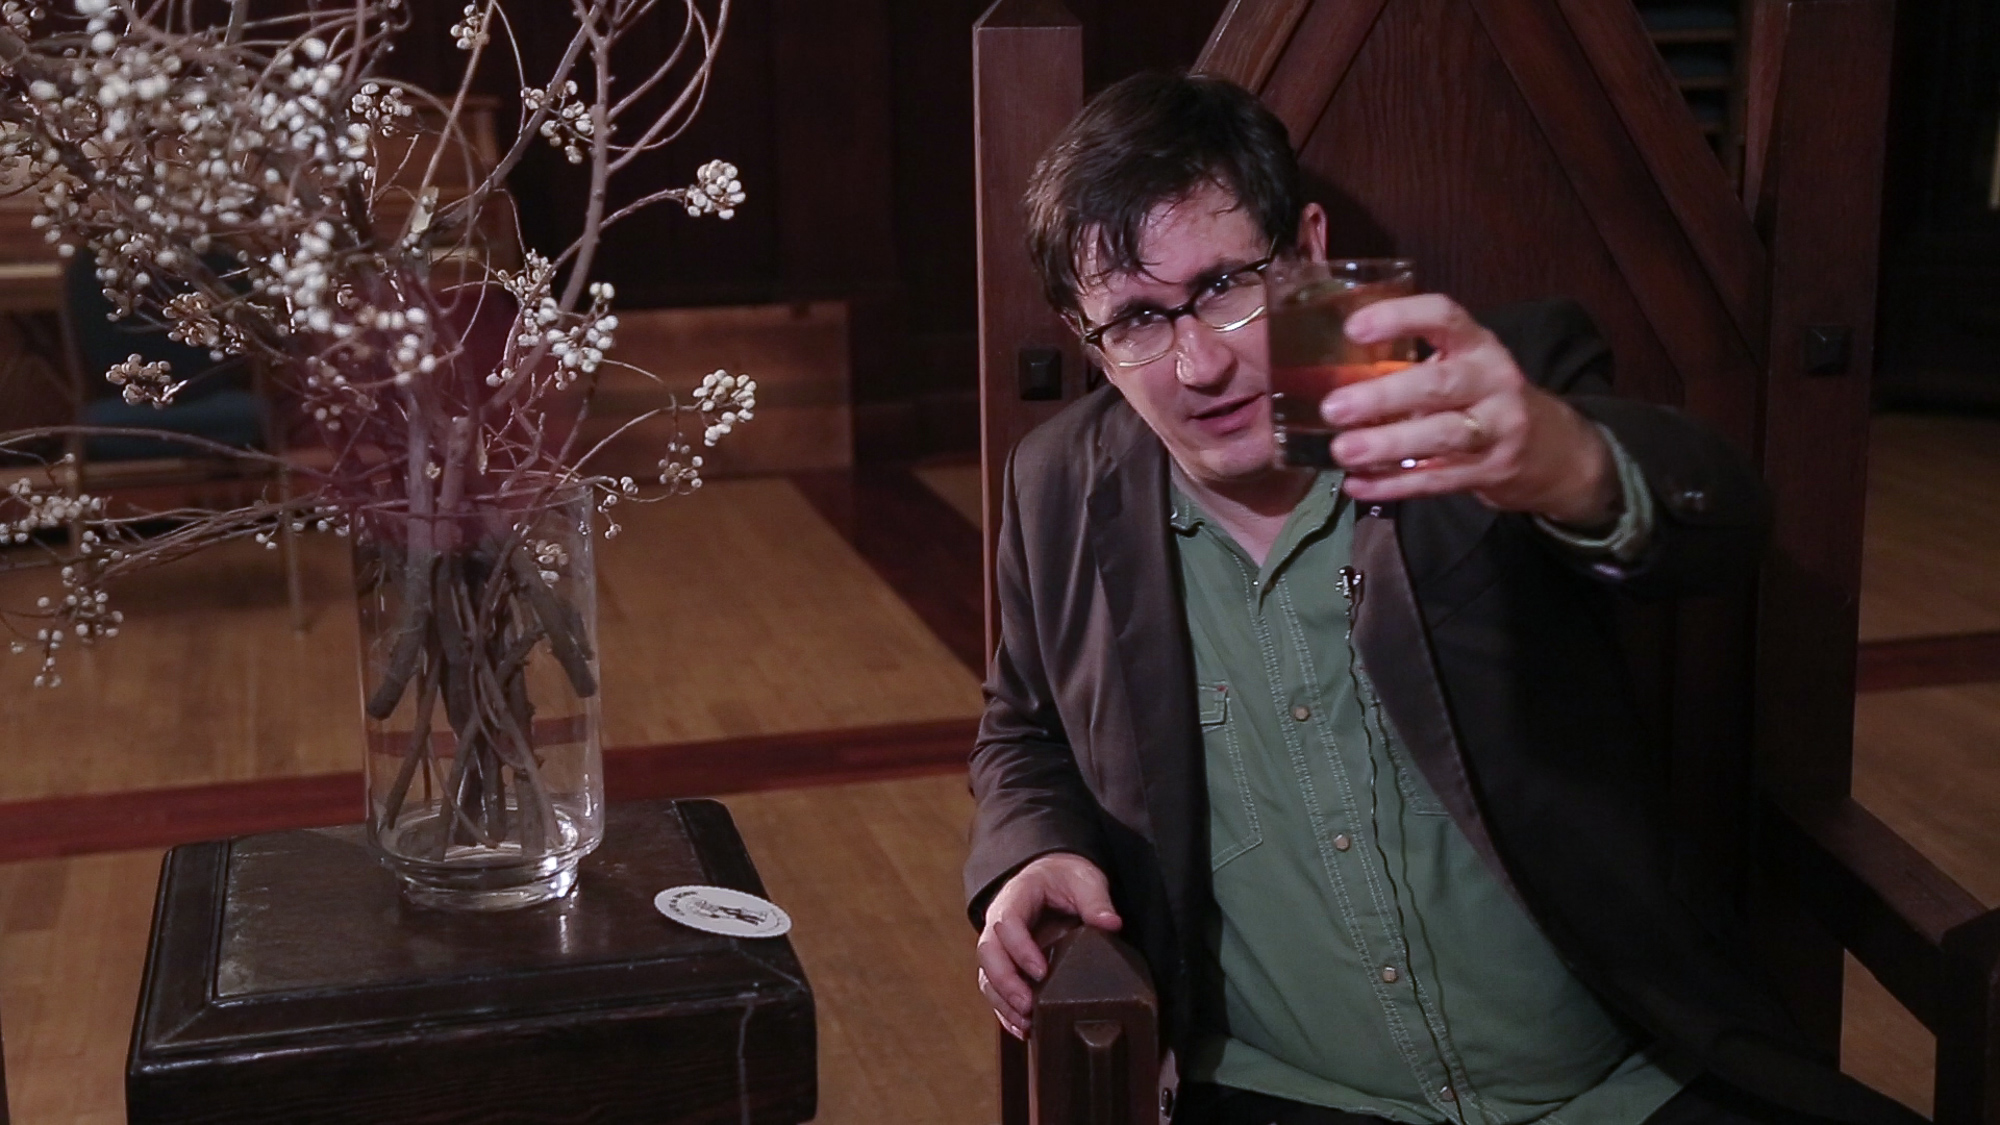 John Darnielle, of The Mountain Goats, toasting Windy of Aquarius, with a lovingly crafted Manhattan.